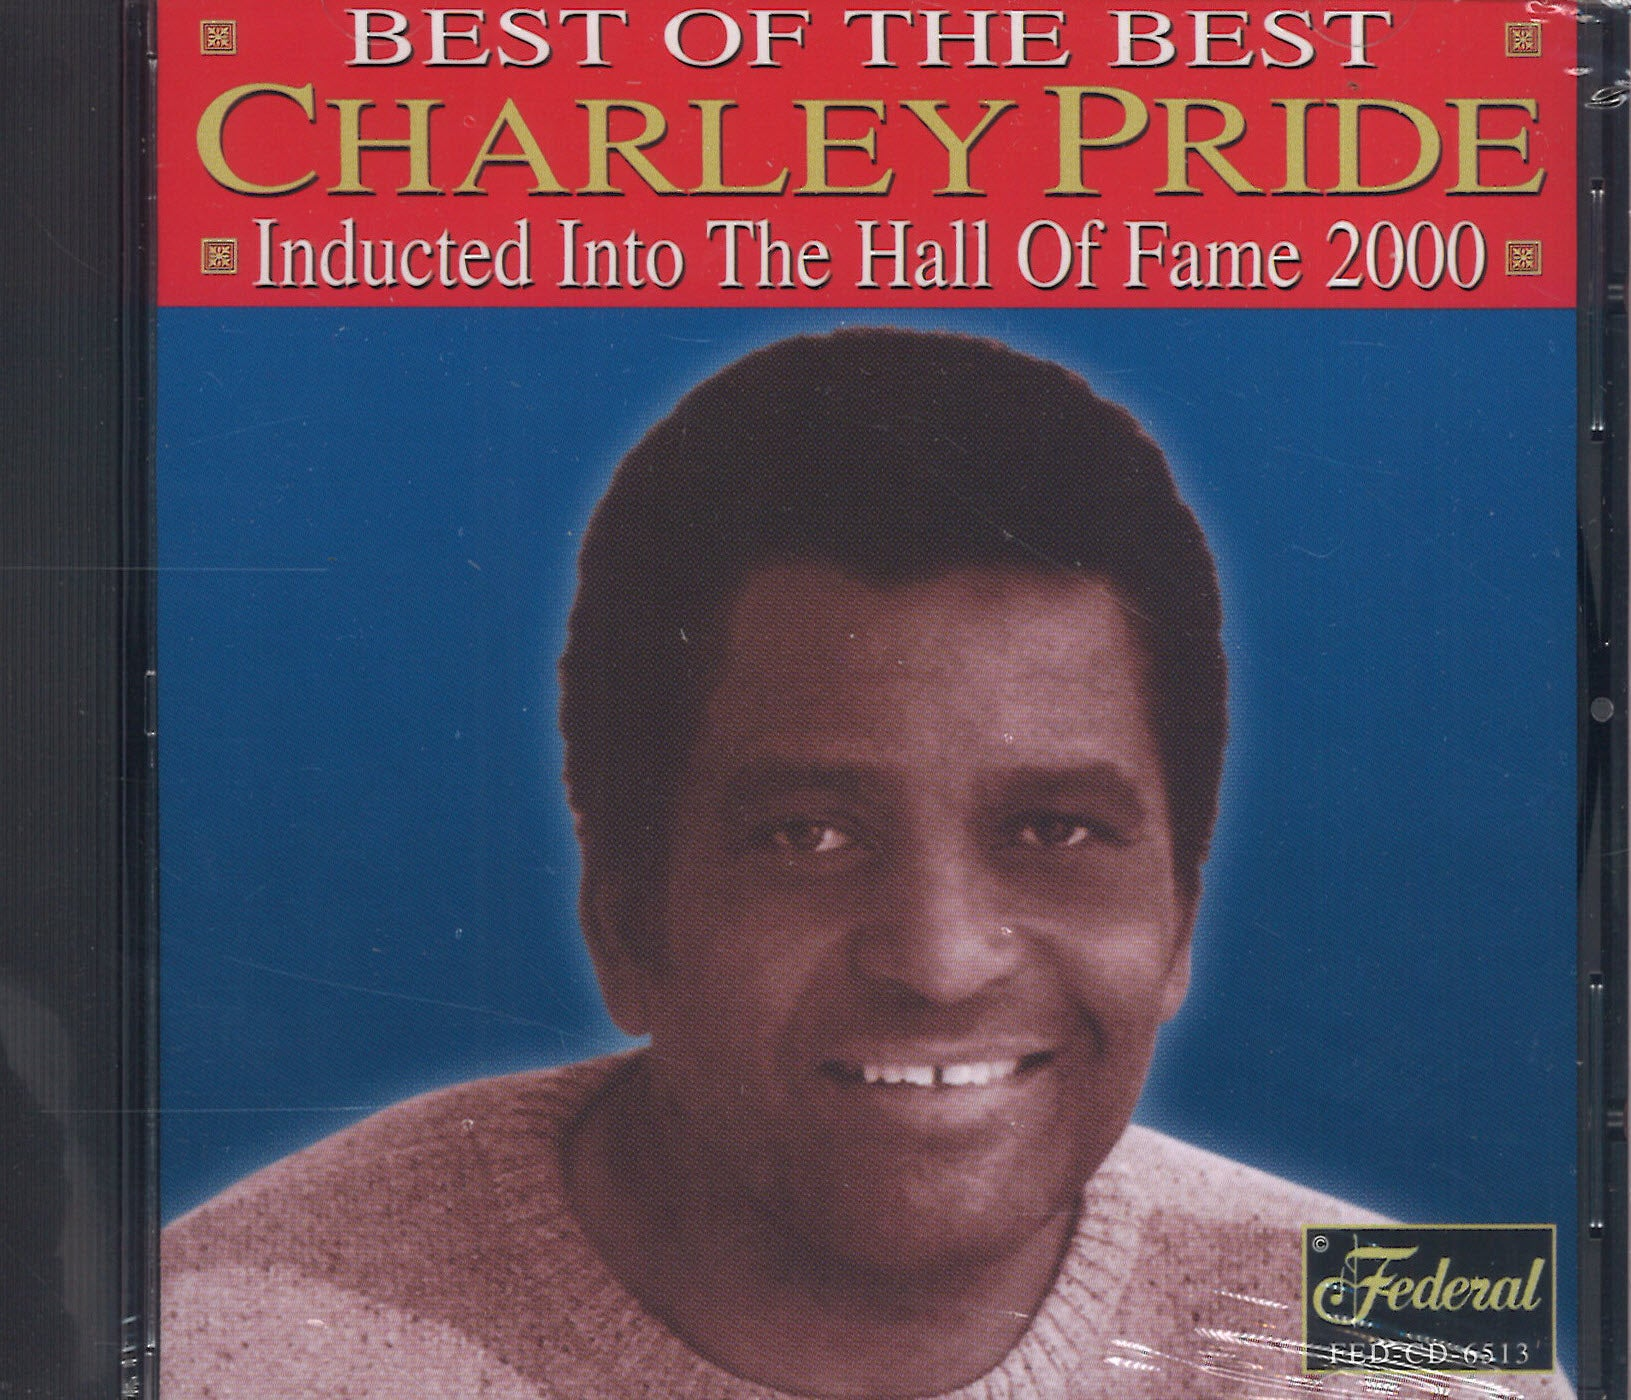 Charley Pride Inducted Into The Hall Of Fame 2000